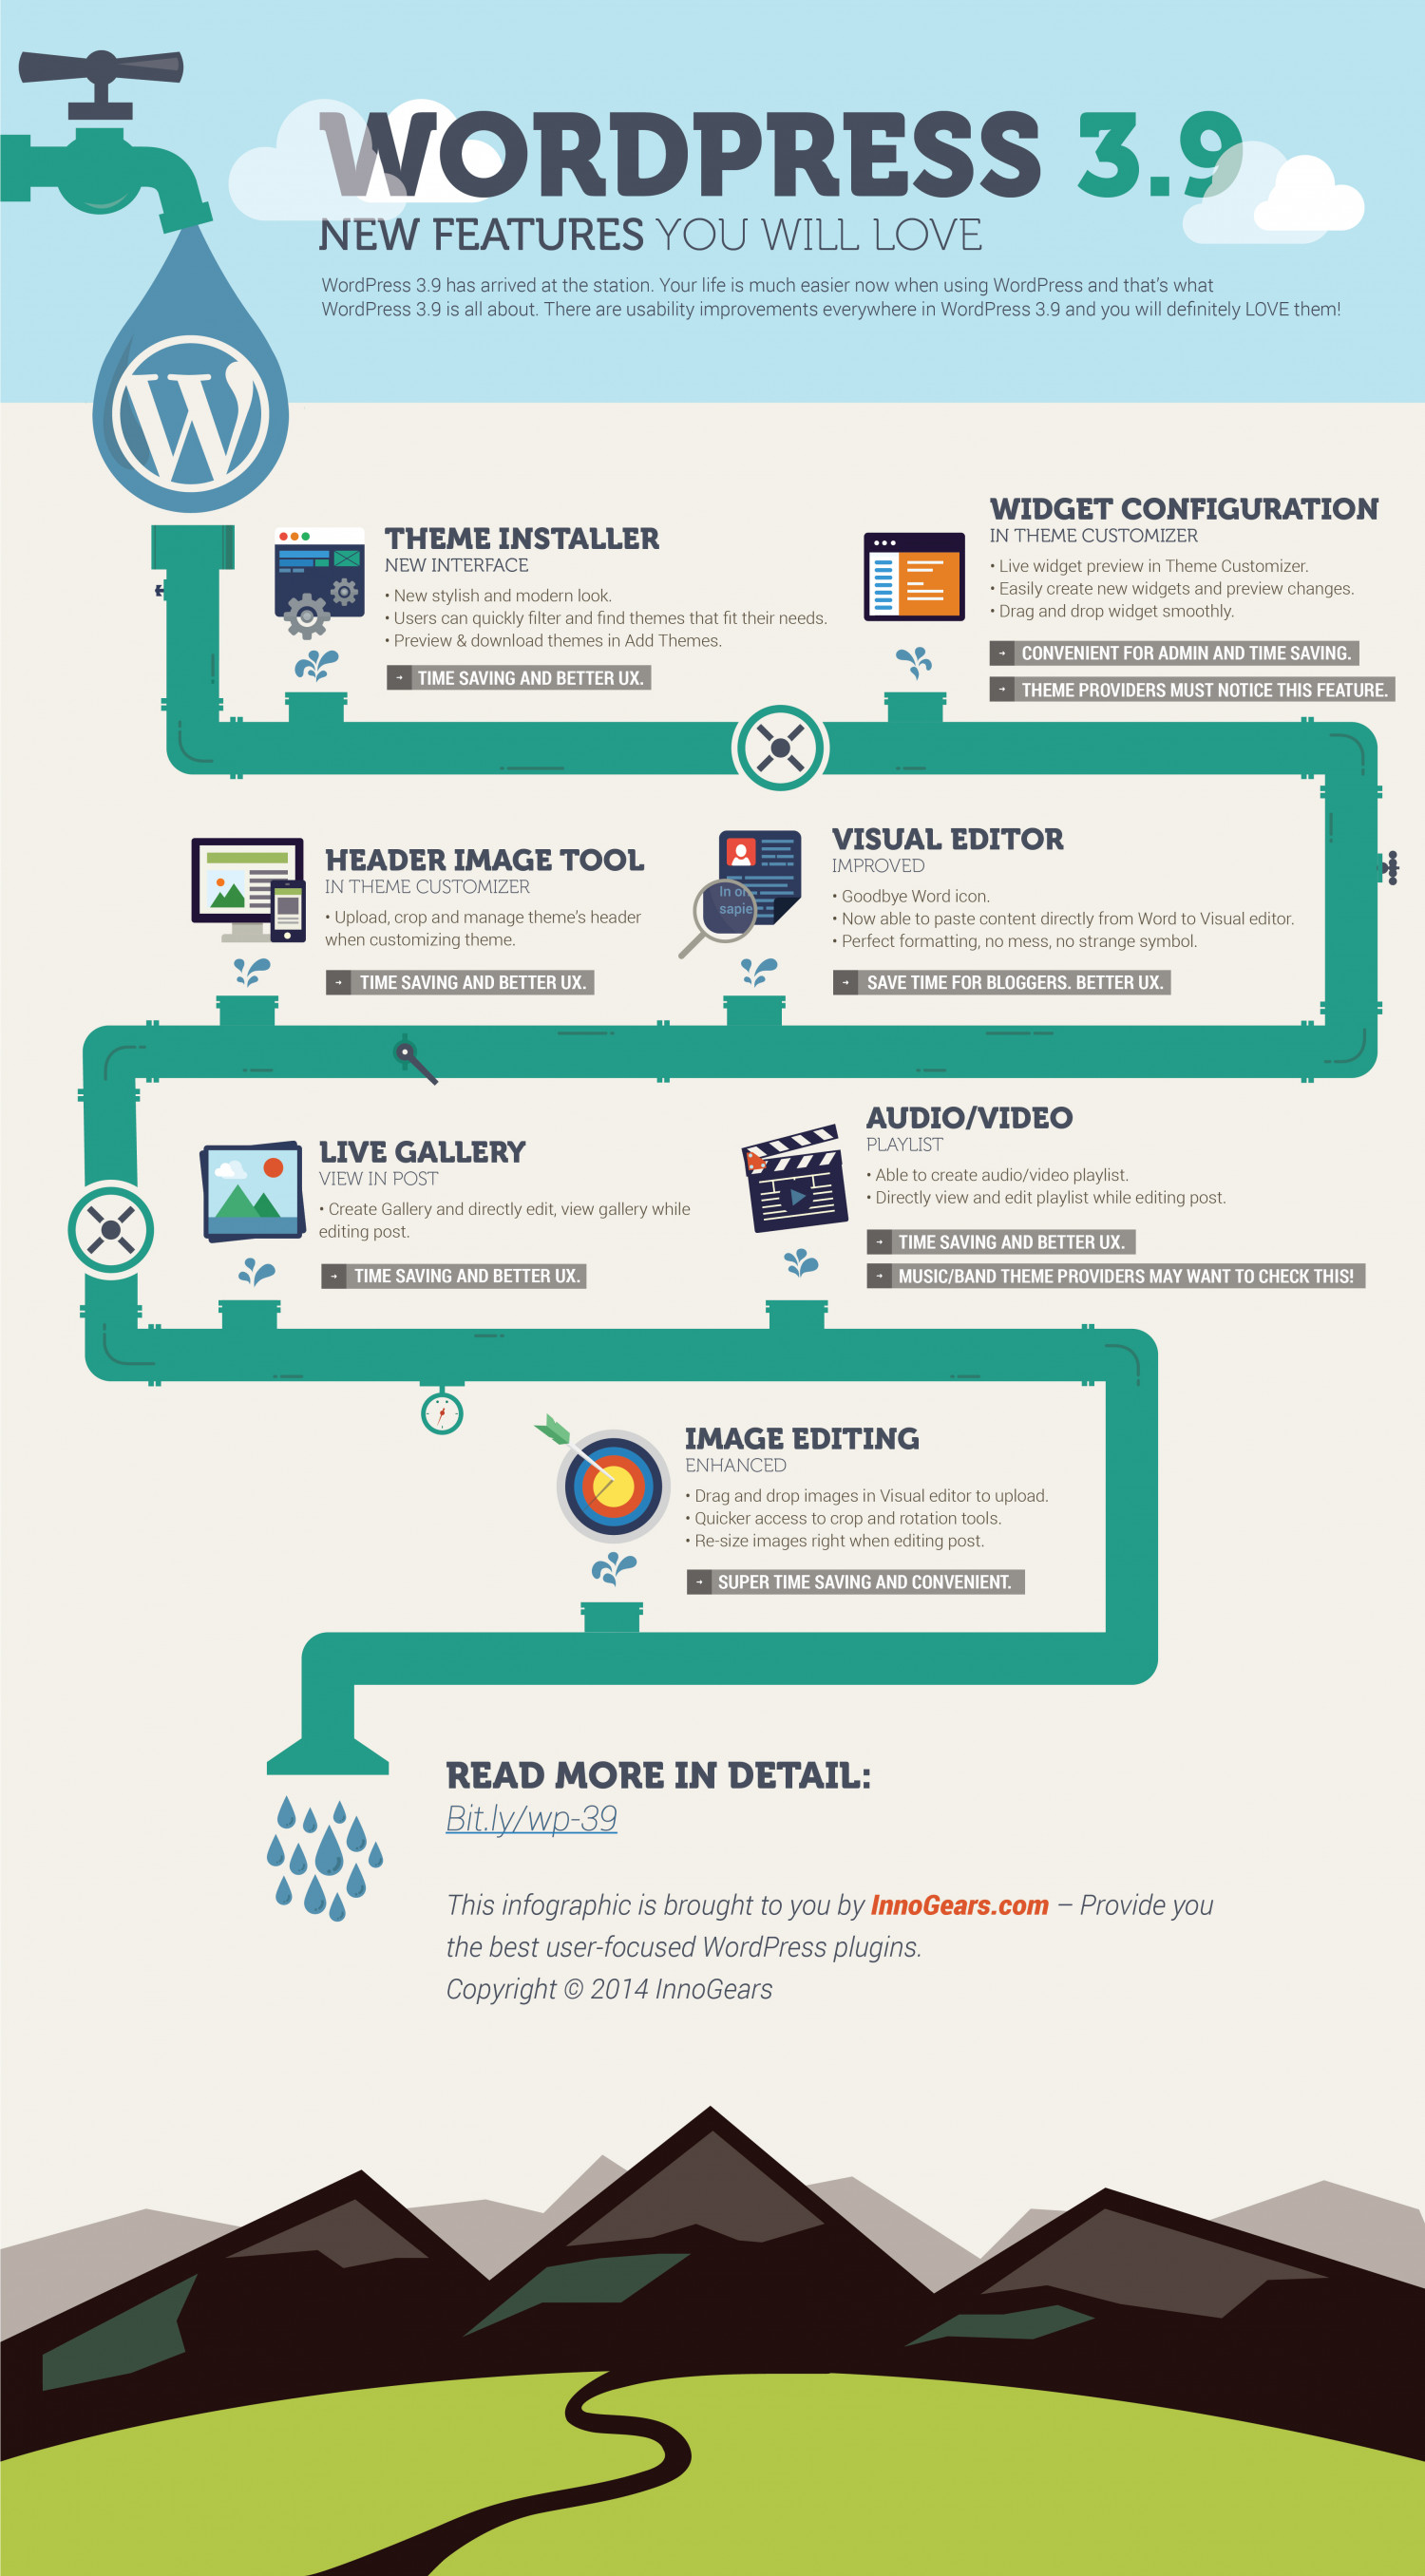 WordPress 3.9 New Features You Will Love Infographic